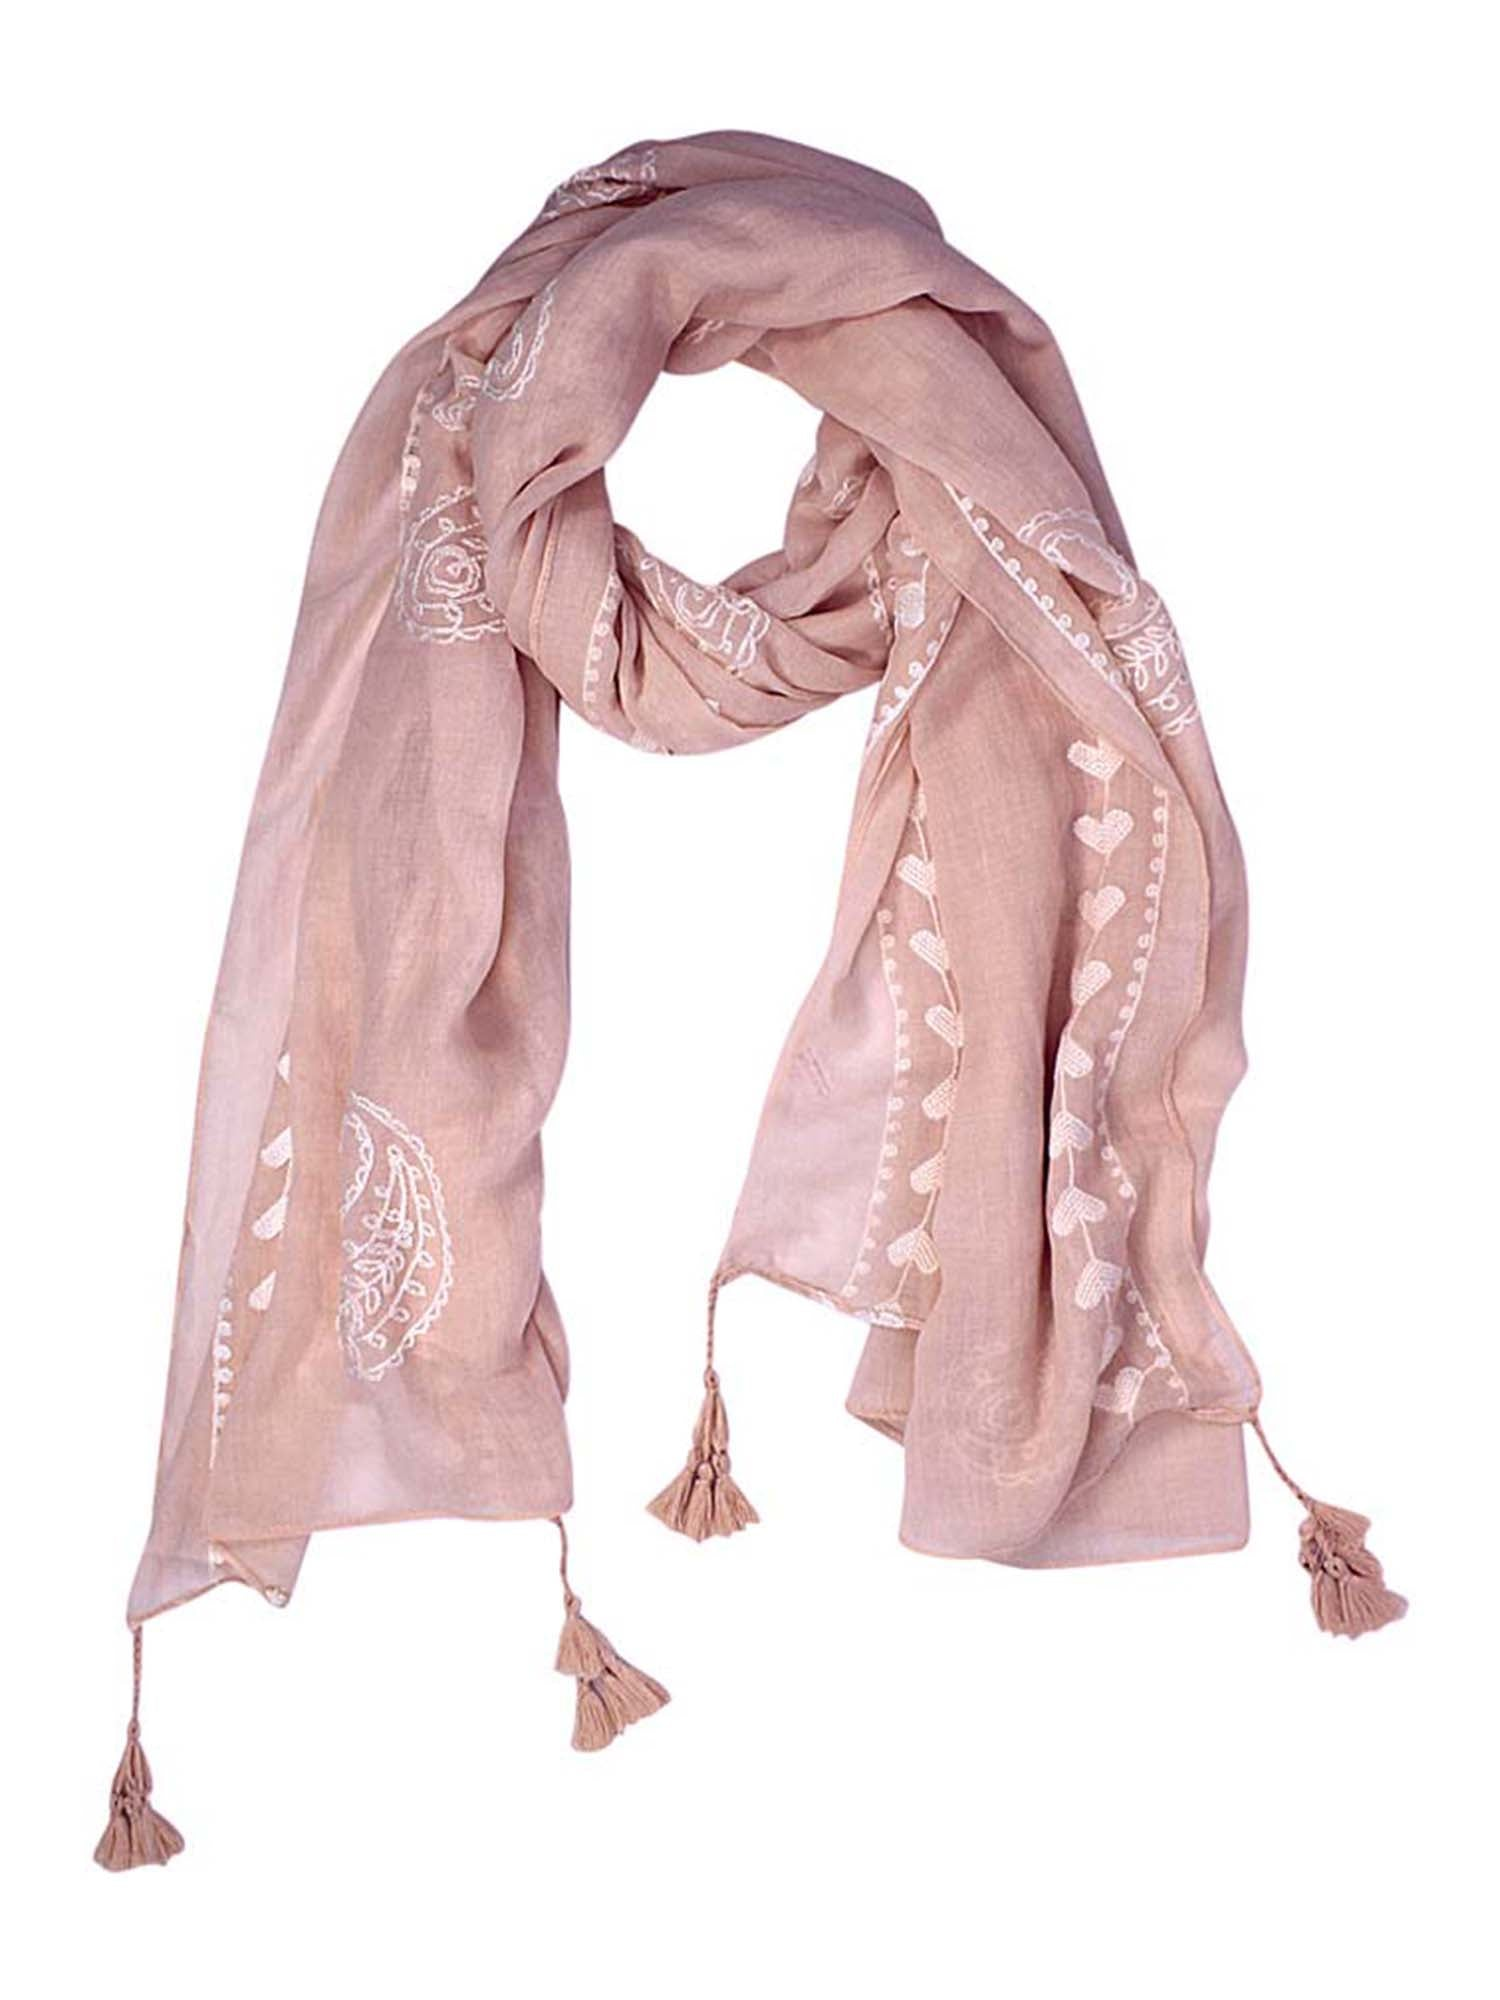 Paisley Heart Embroidered Boho Scarf With Tassel Trim